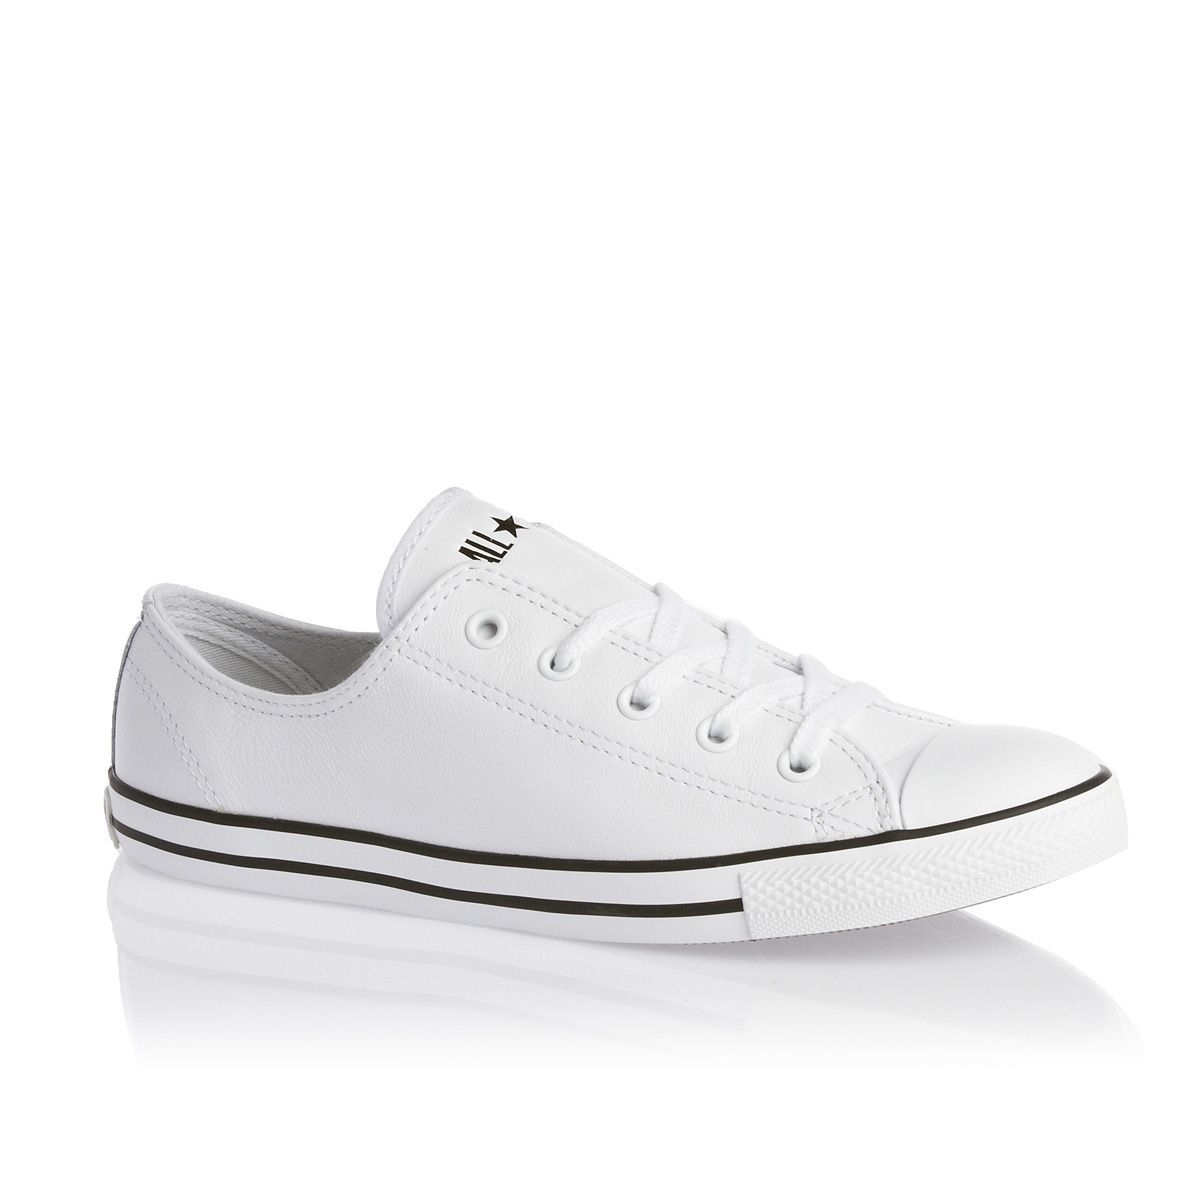 Buy Converse Chuck Taylor All Star Dainty Ox Shoes White with great prices cddfdfcc6583e